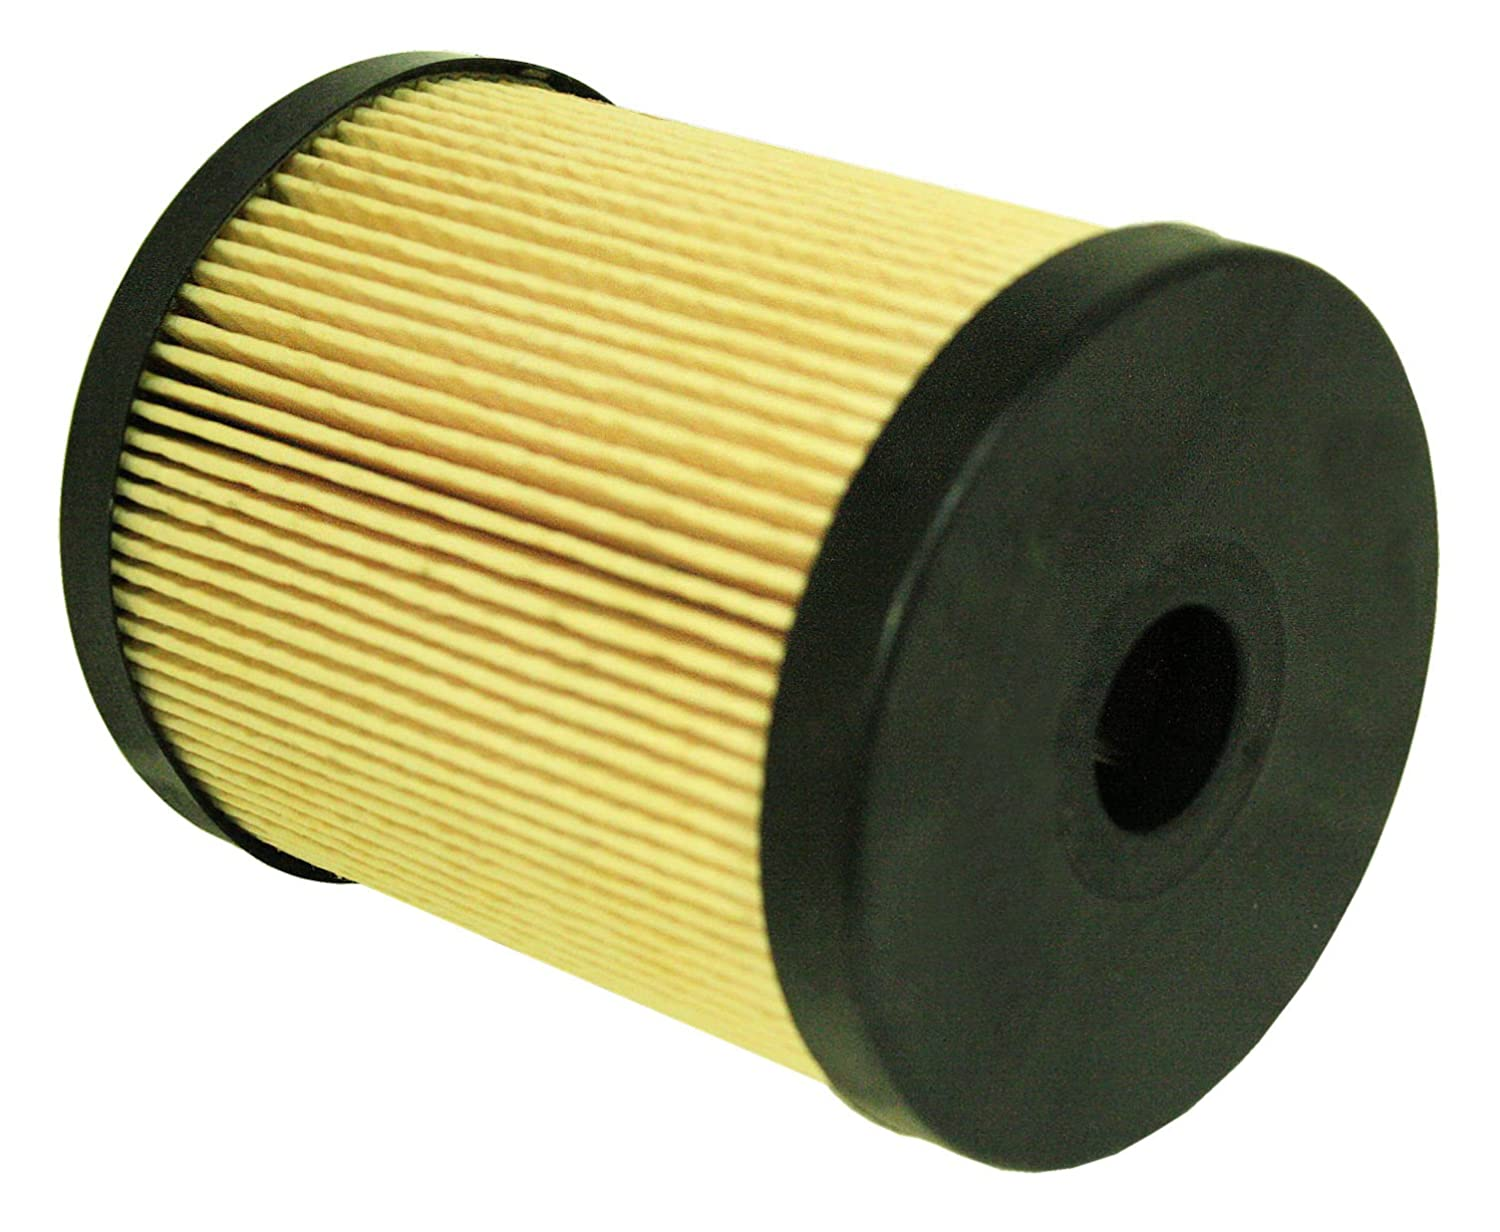 Acdelco Gf833 Professional Fuel Filter Hot Sale 2017 Test 2006 Jeep Commander